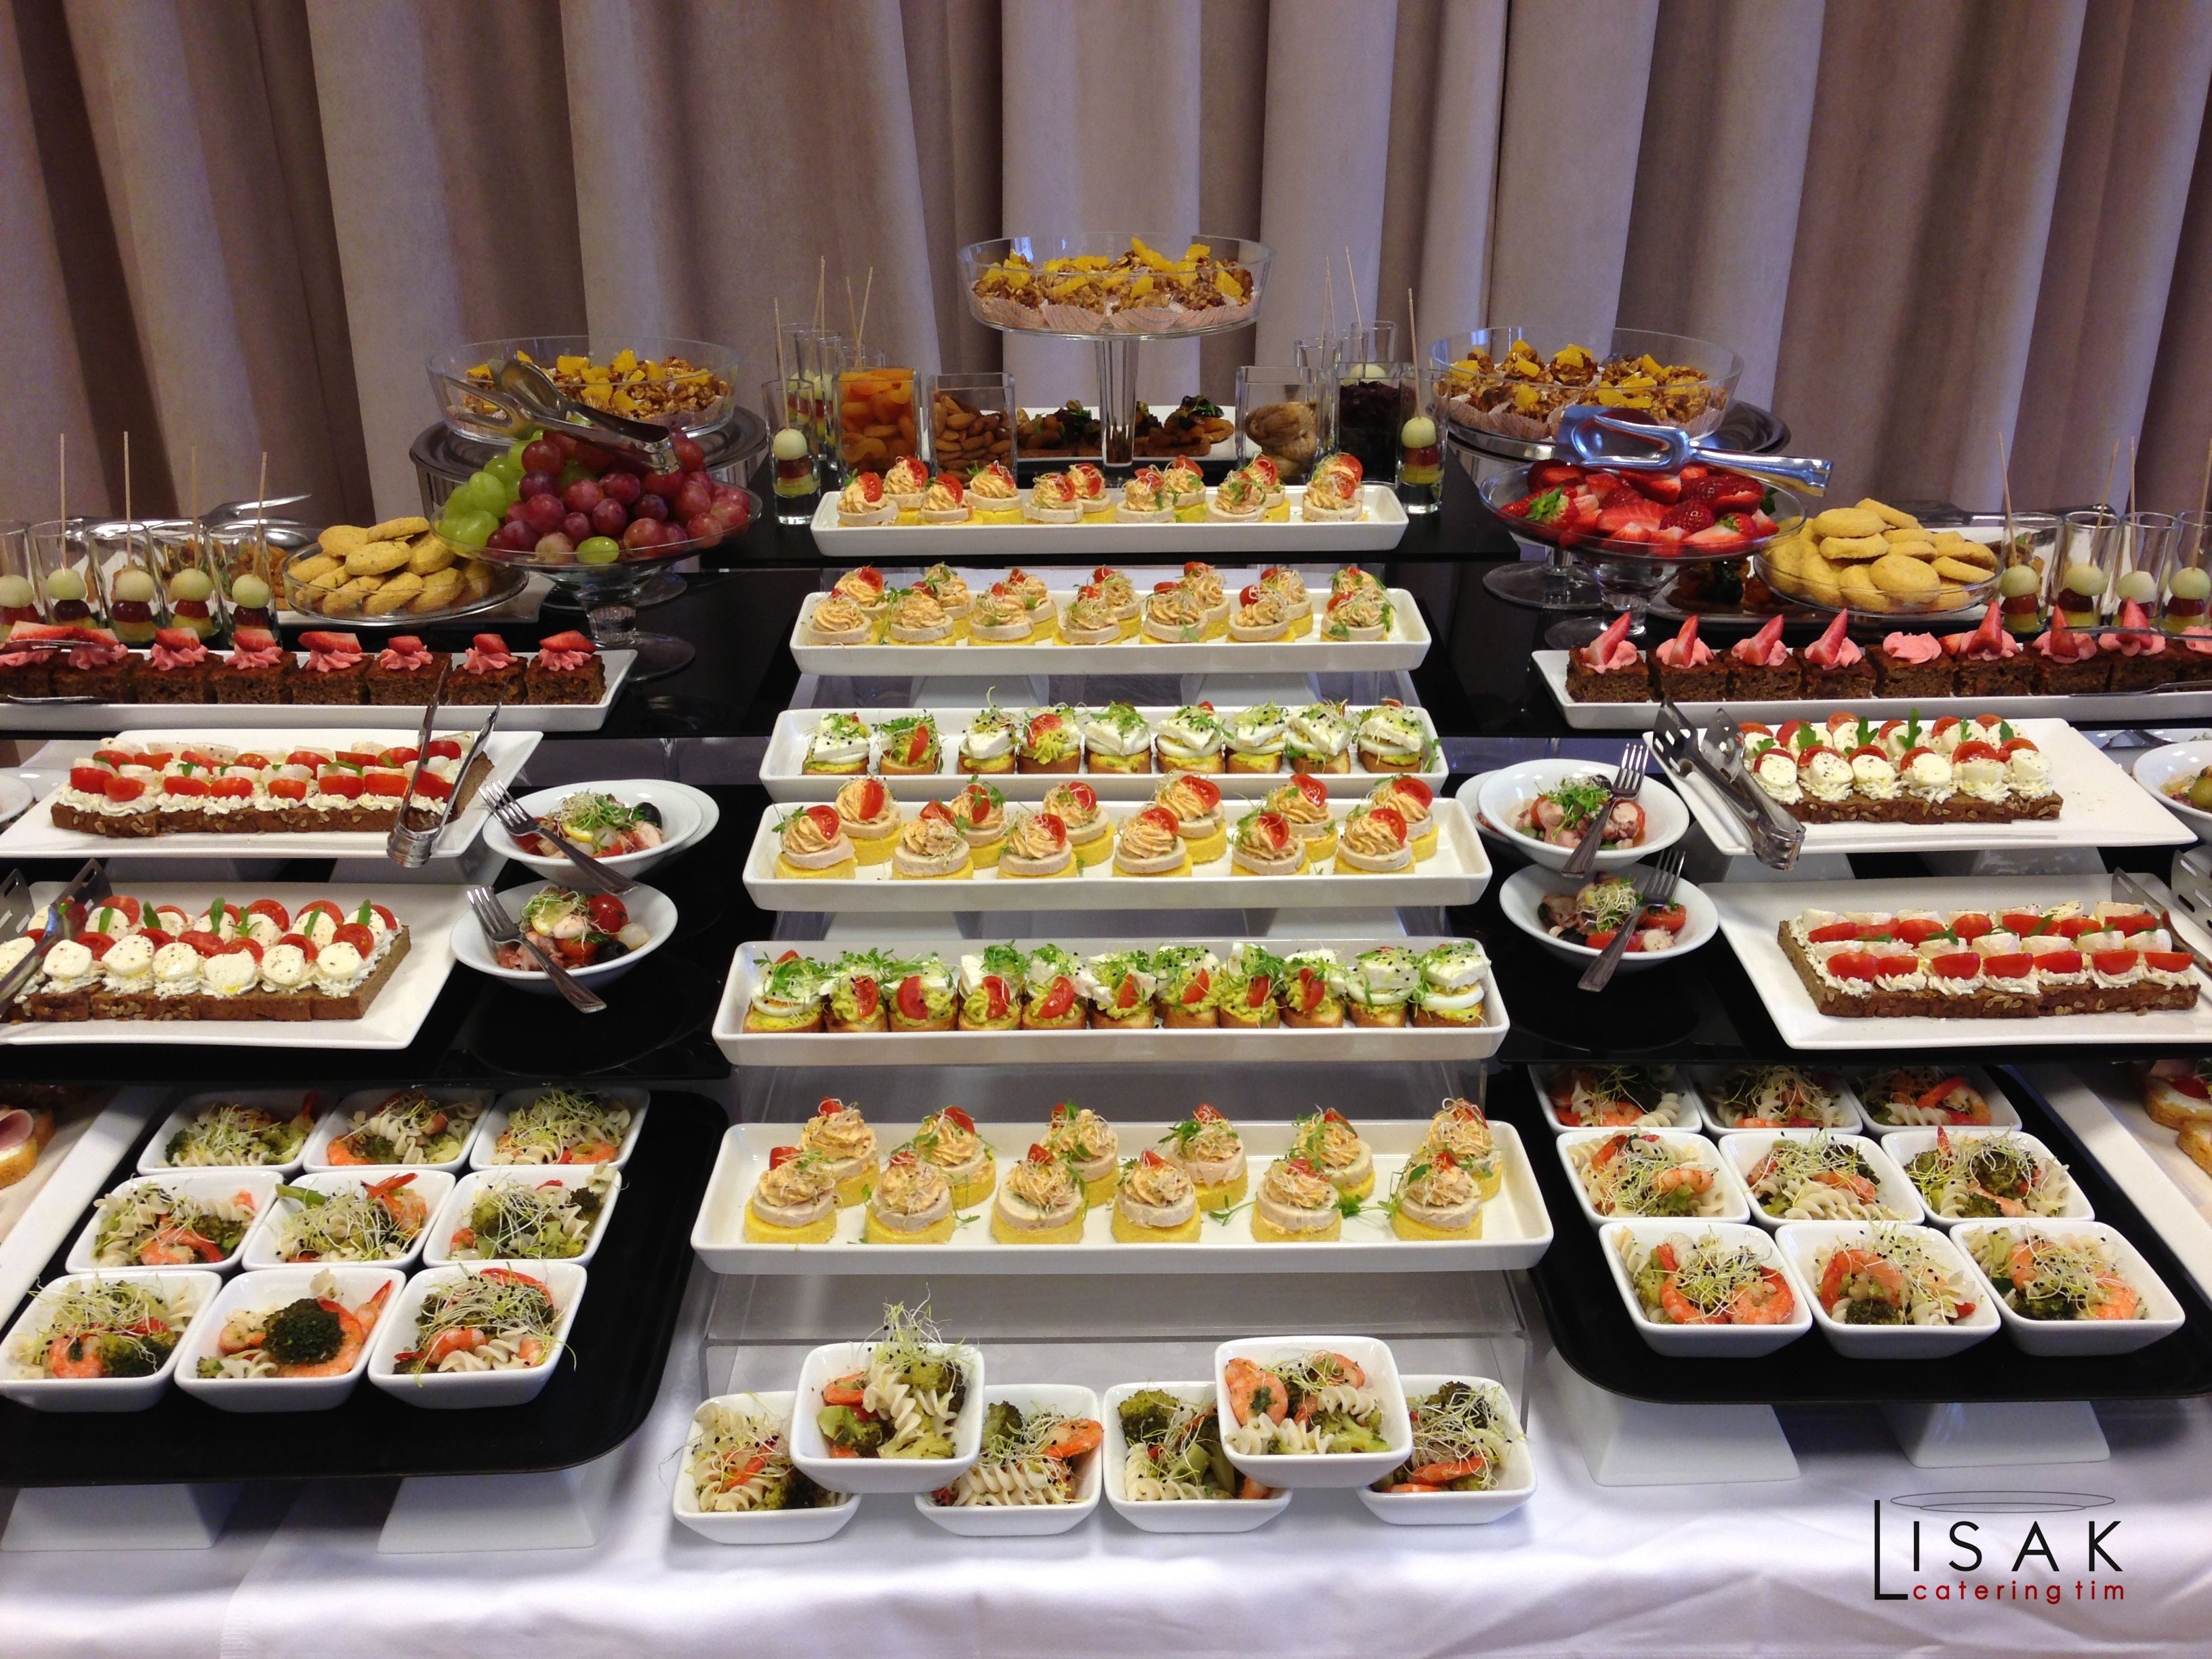 Catering fingerfood party buffet appetizer table food